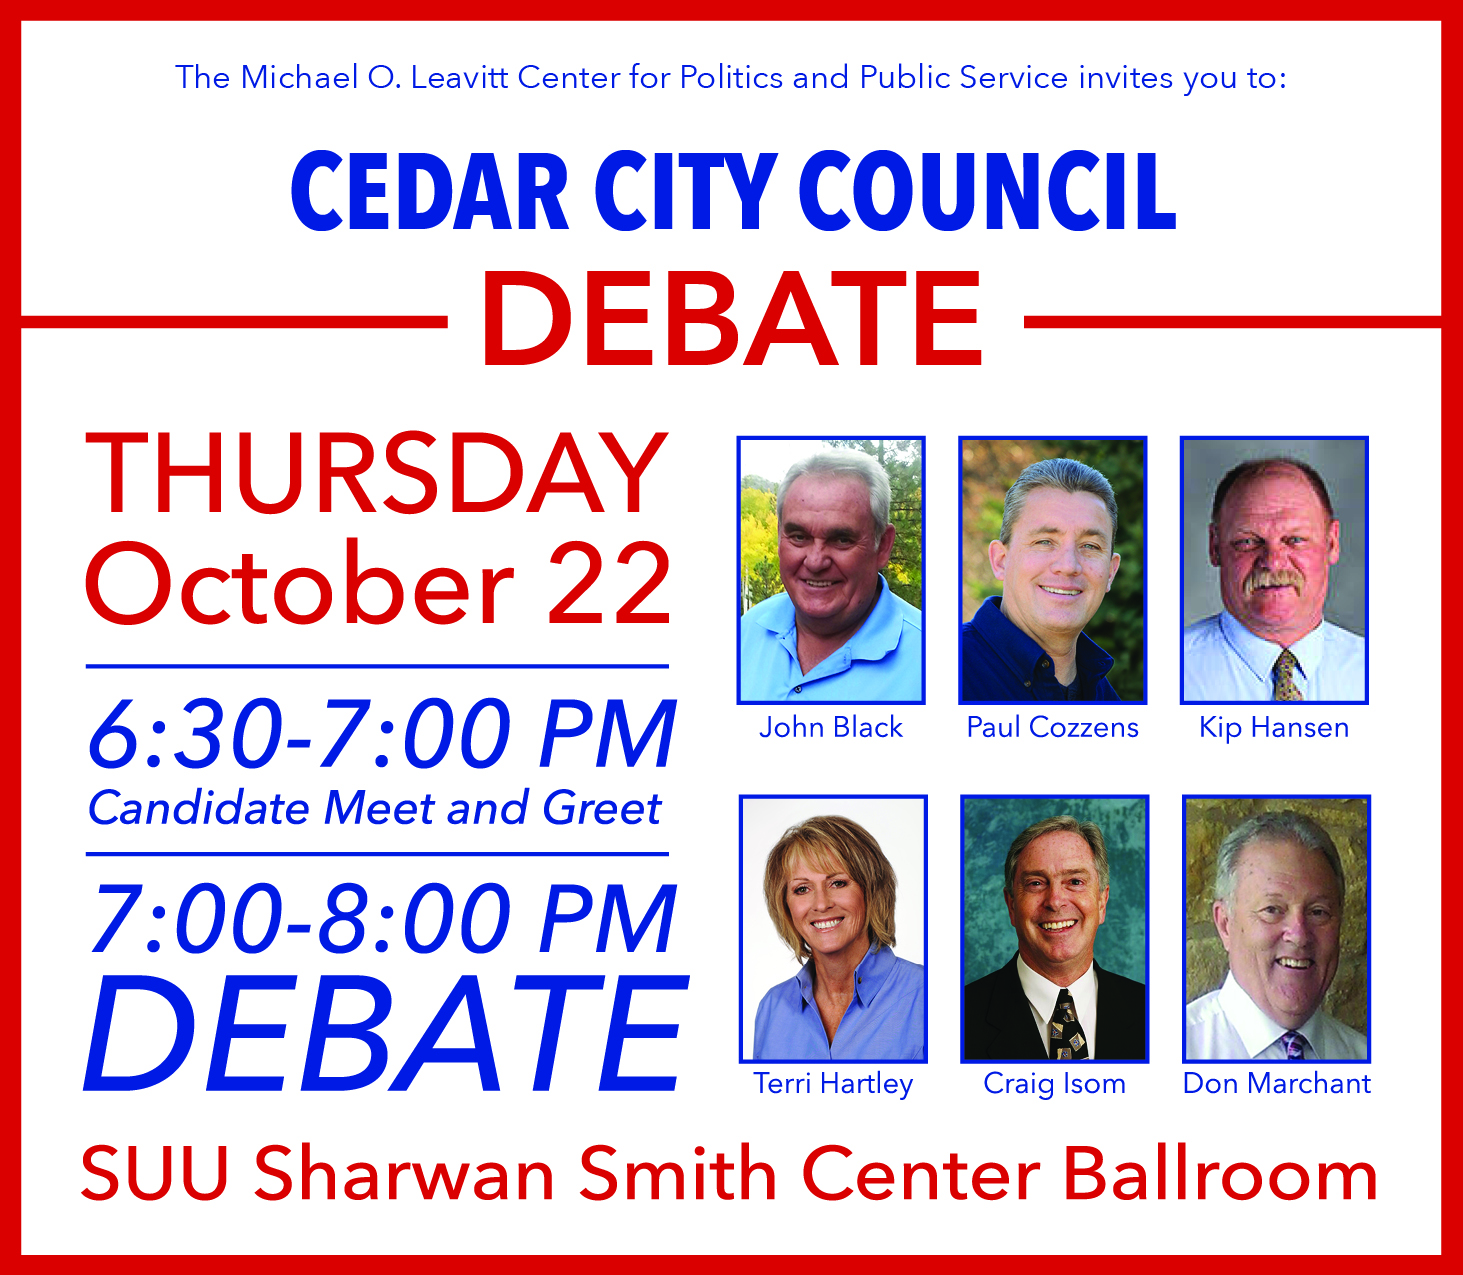 global local debate in city The 50+ main debate topics at proconorg are listed below along with their respective core questions is human activity a substantial cause of global climate change top pro & con quotes: college education santa monica local elections, 2014 [archived] us - iraq war should the us have.